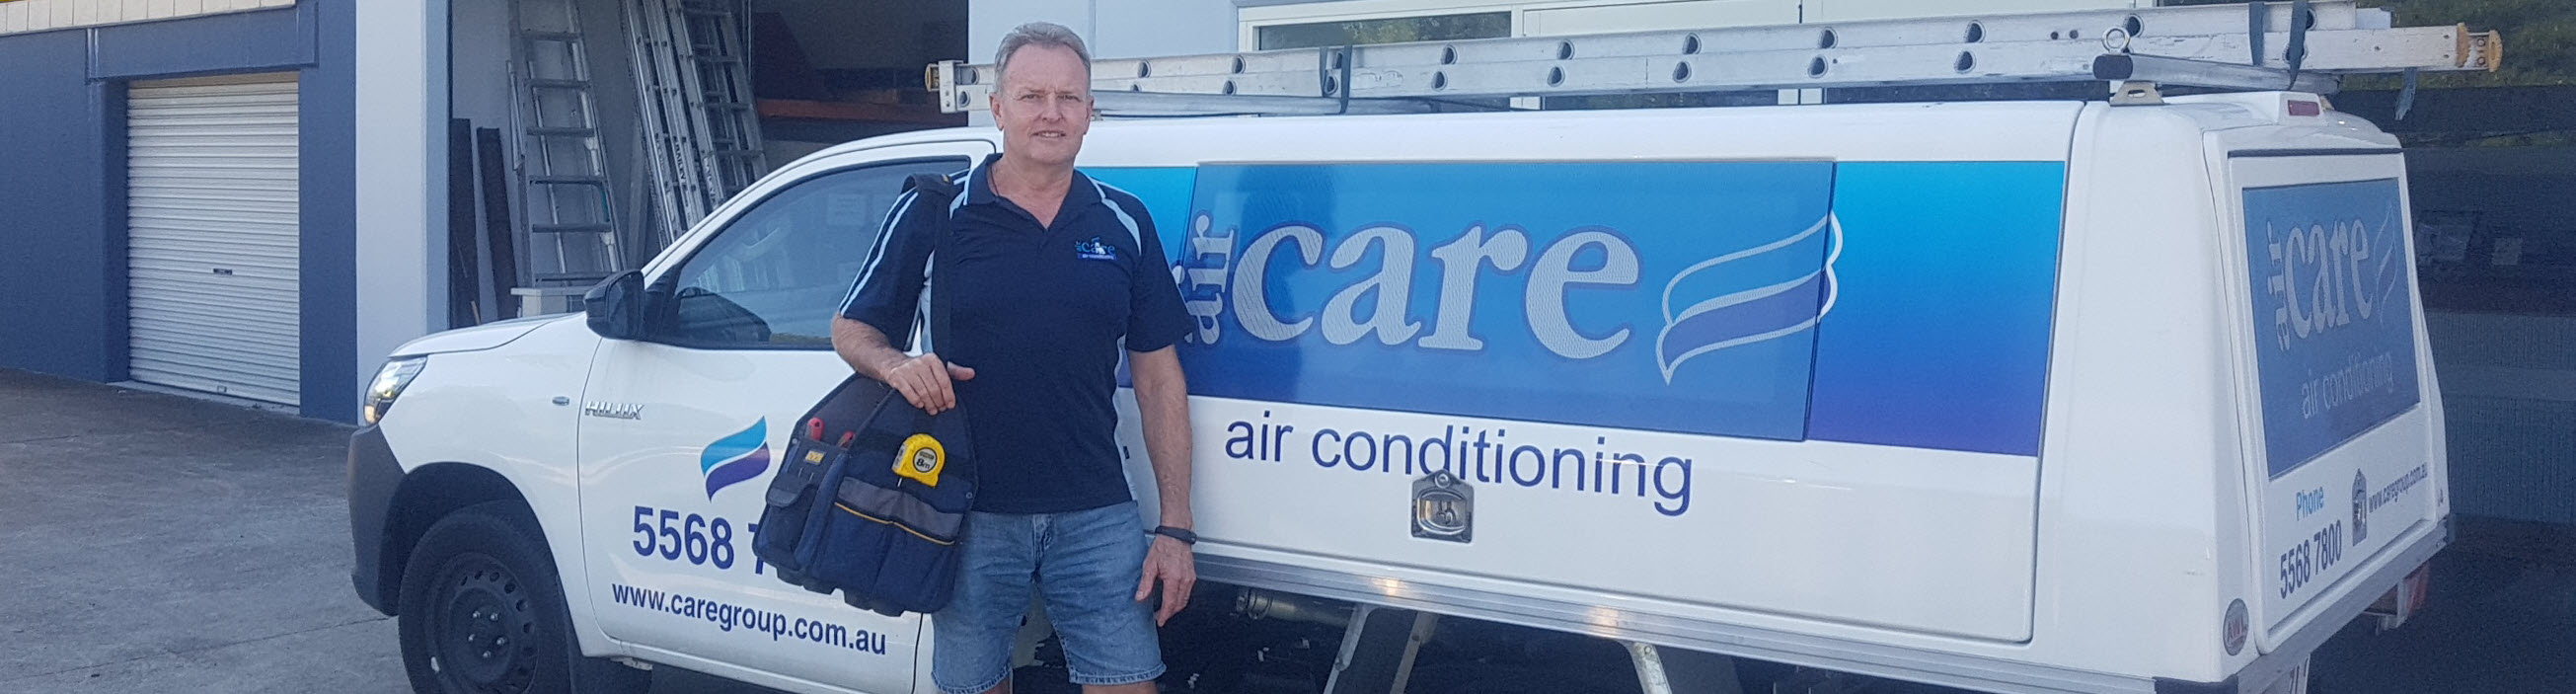 Commercial Air Conditioning Mermaid Beach